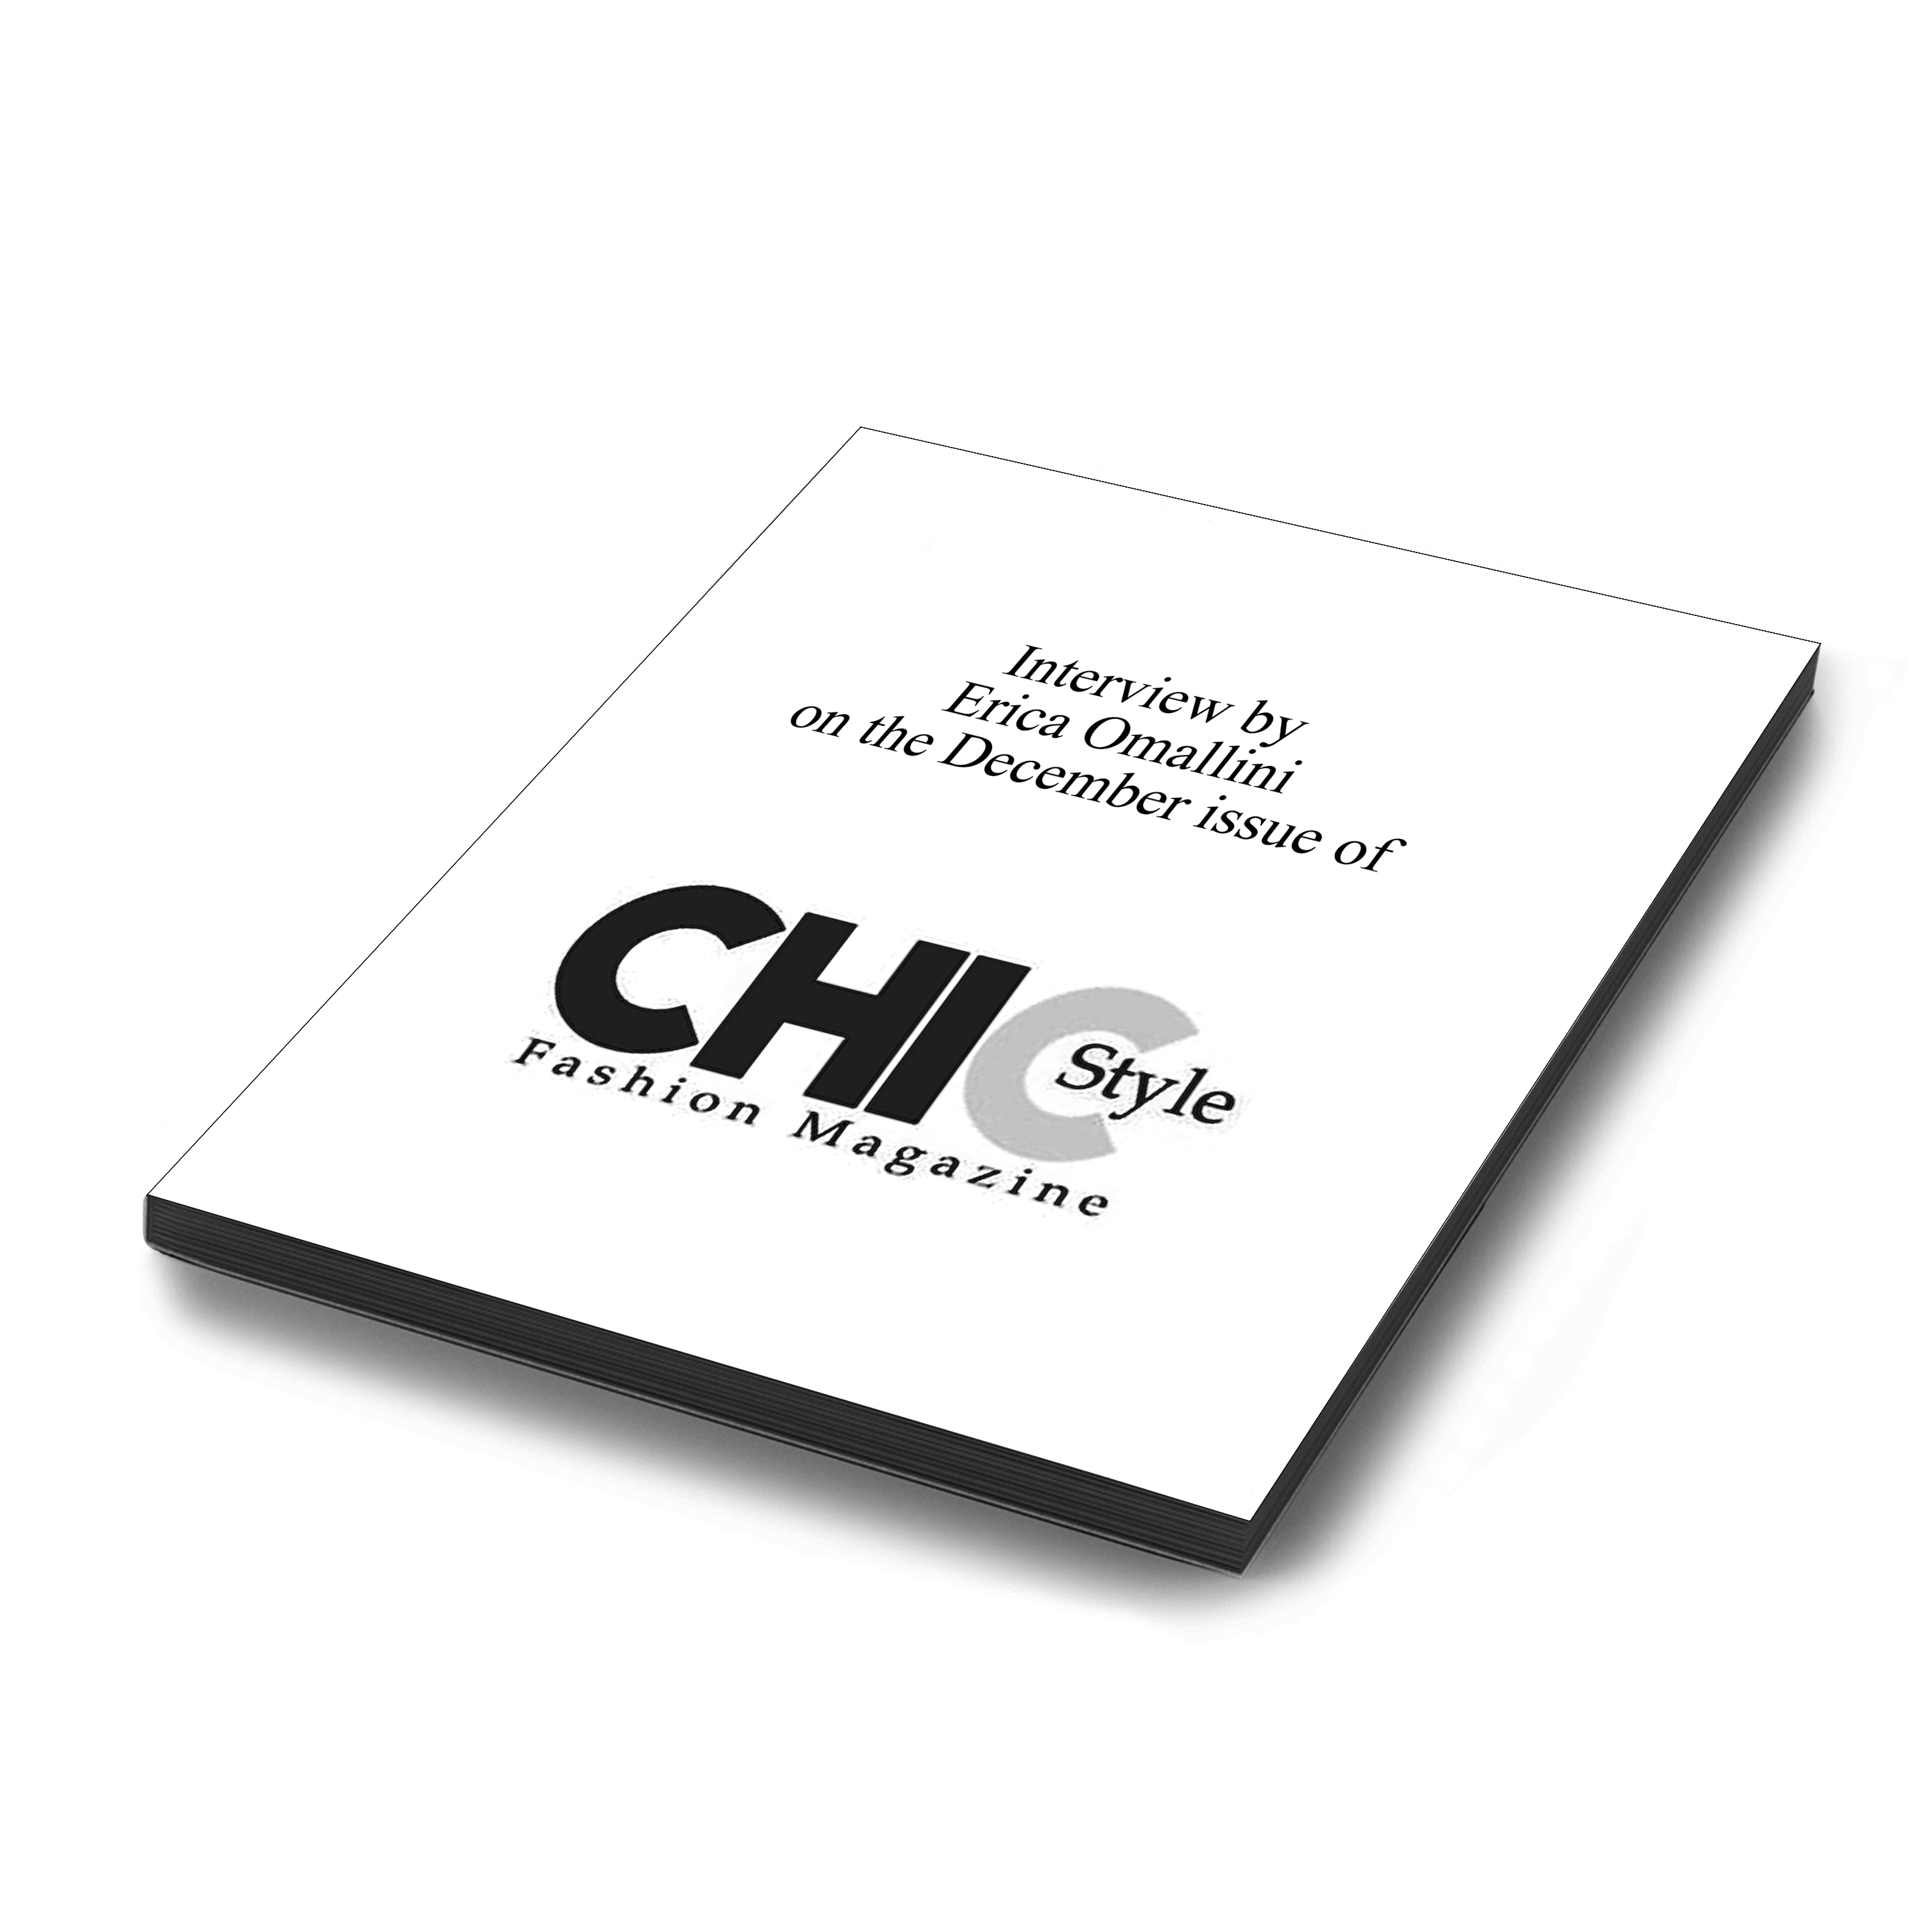 038_Chic Style 2019 cover white (high)